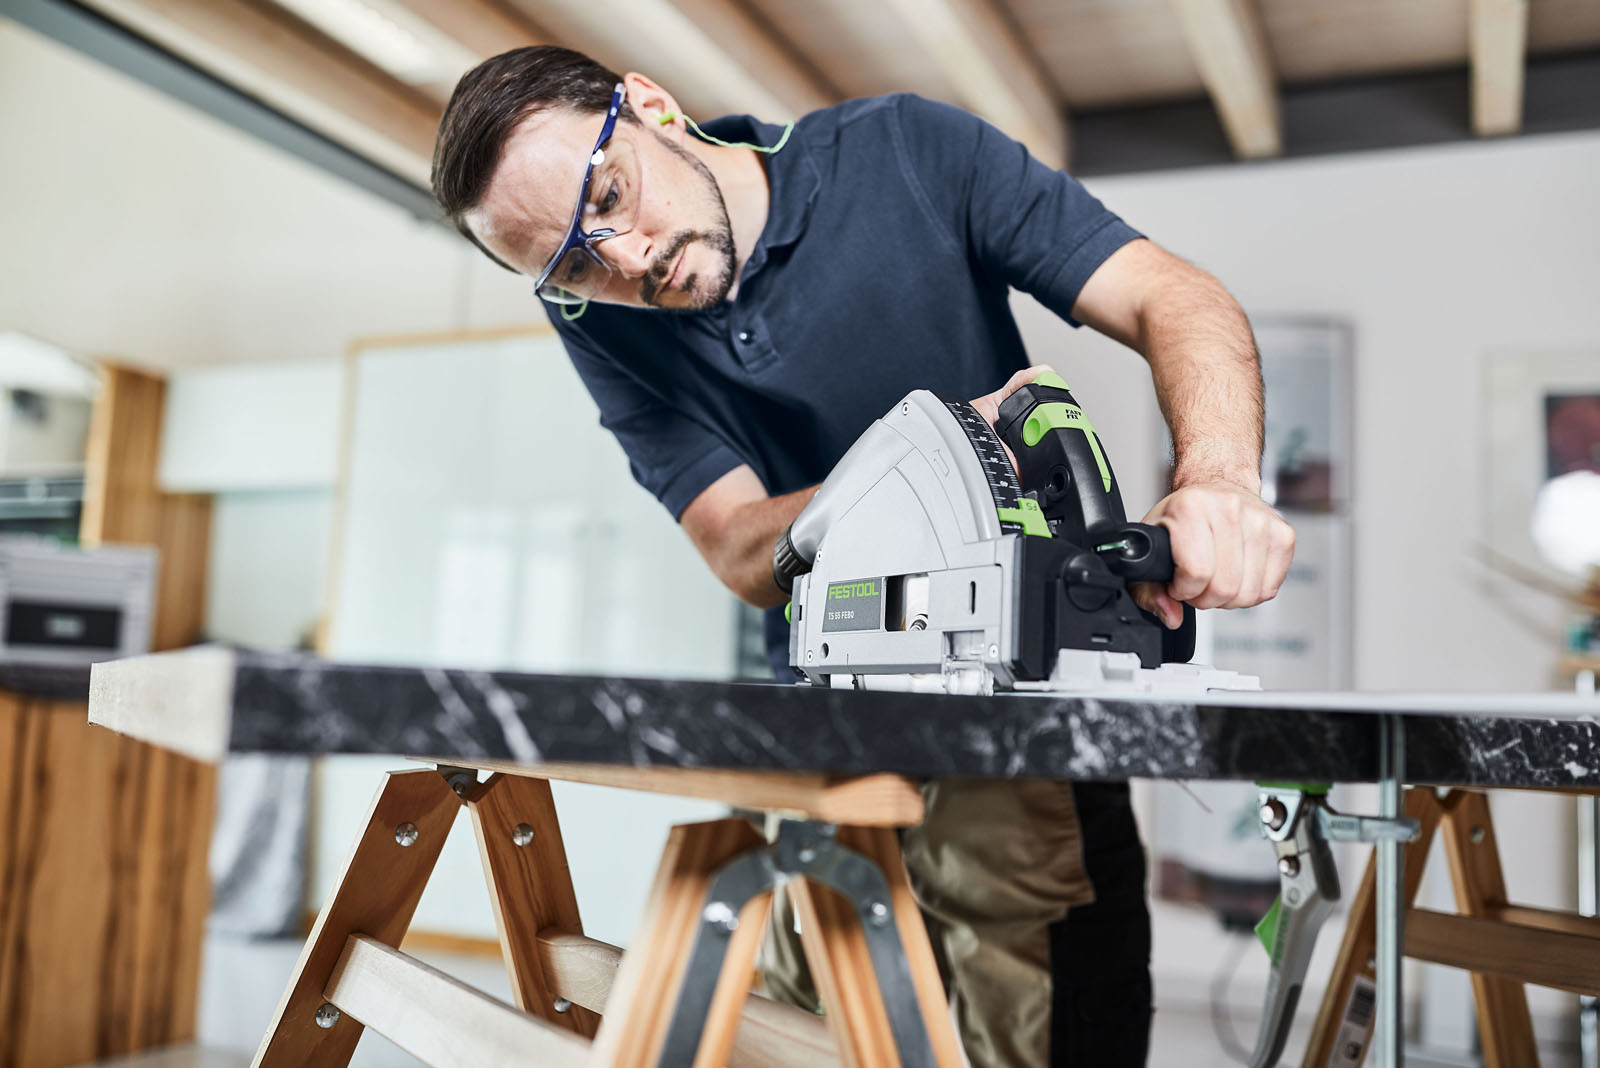 Festool's latest developments in power tools